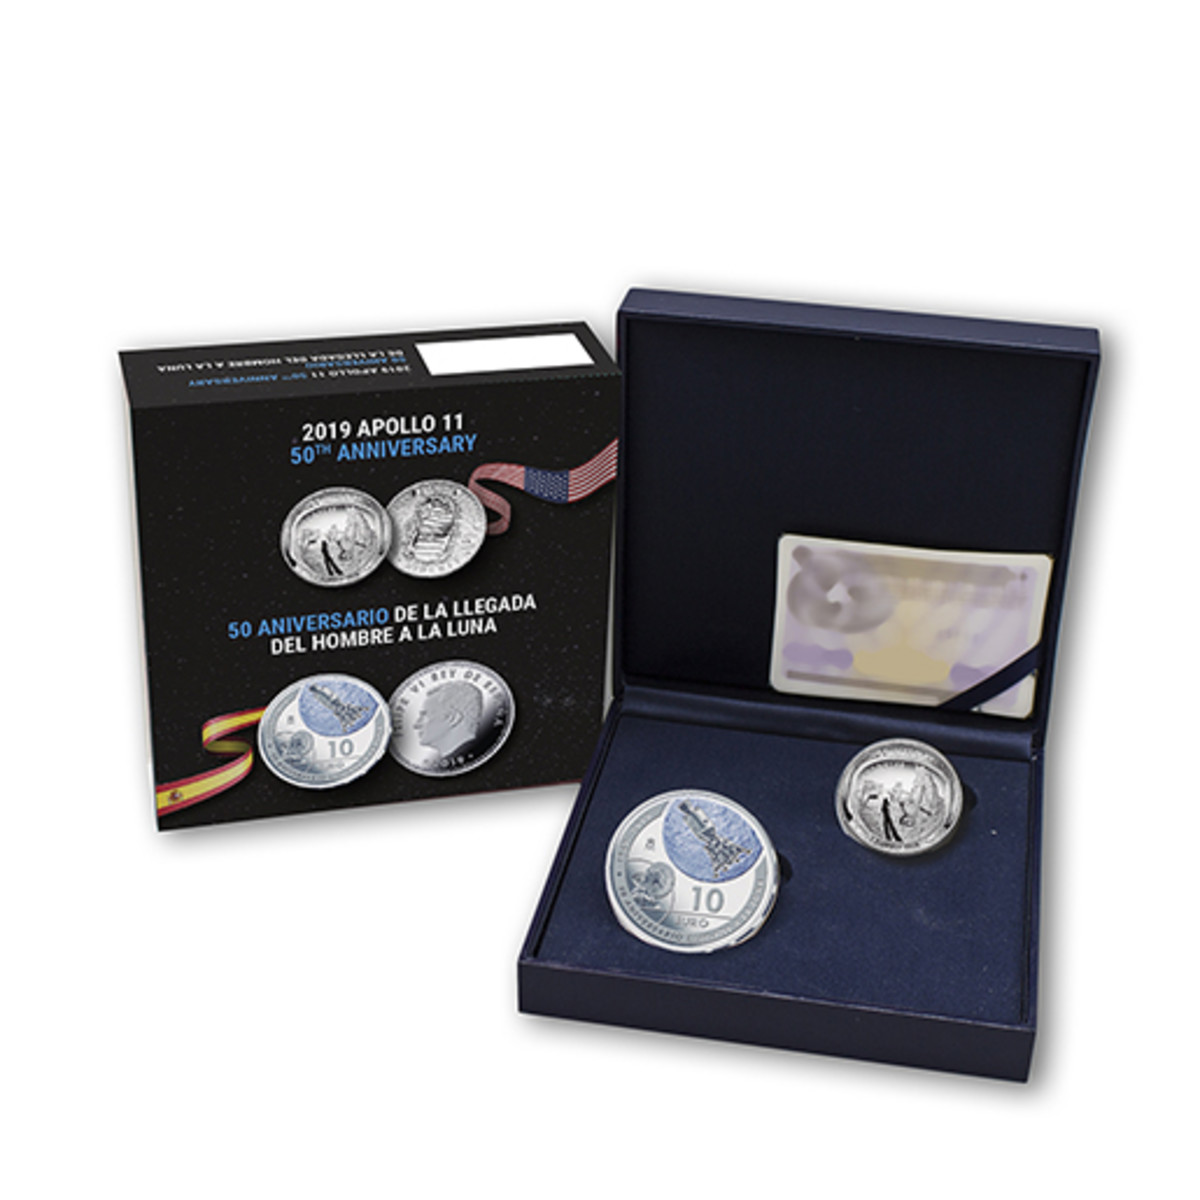 Both coins come packaged together in an attractive box with certificate of authenticity.